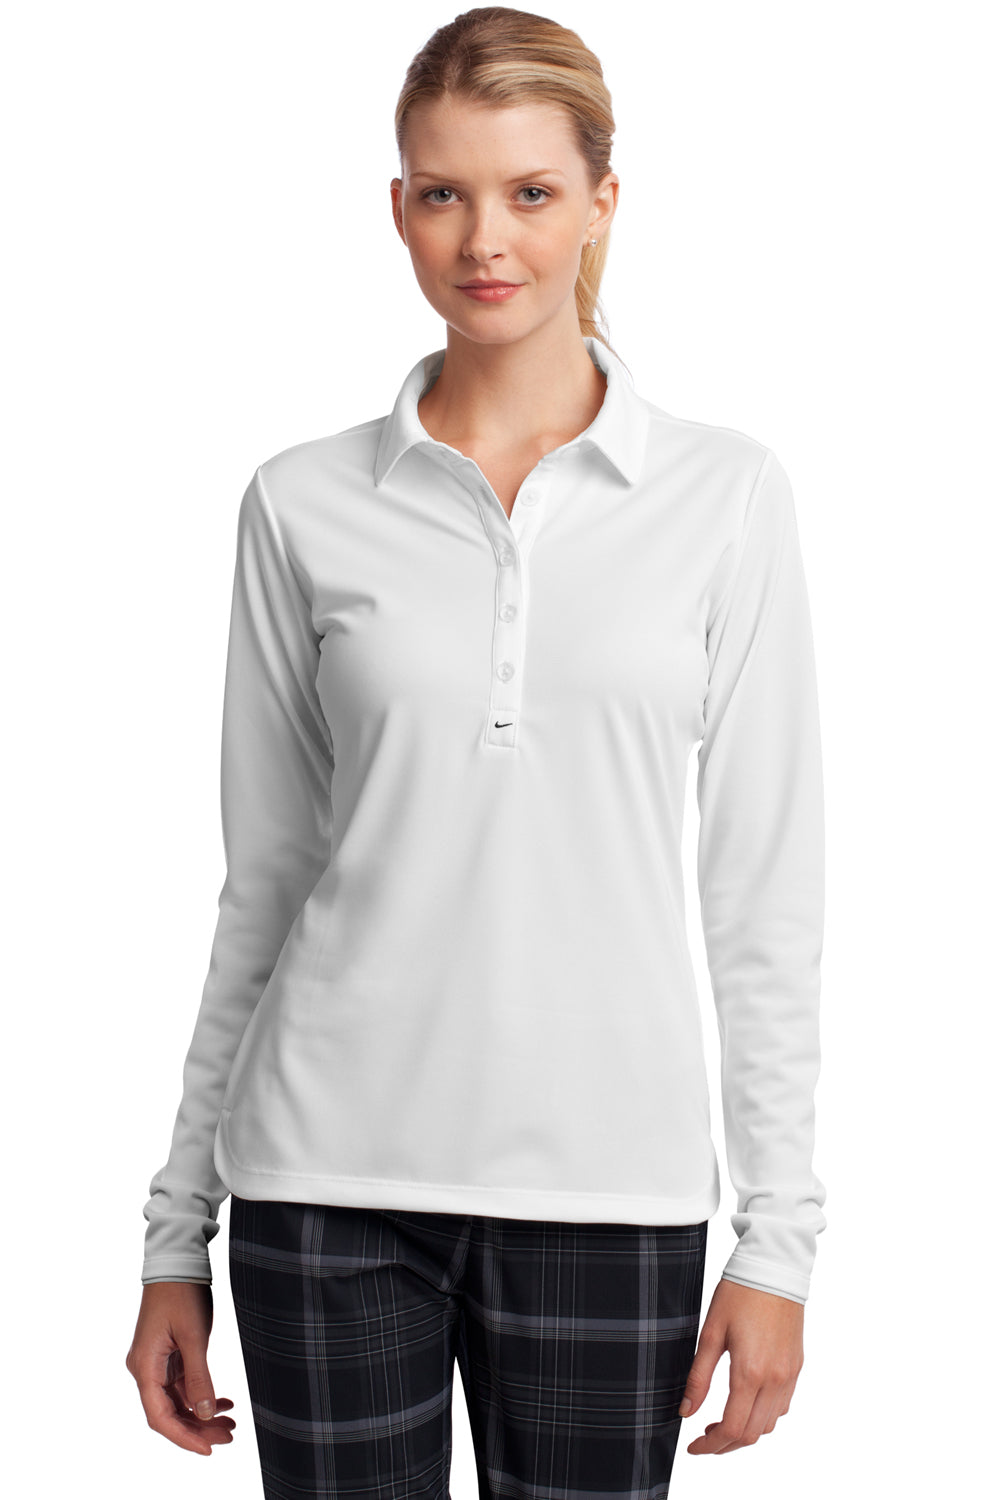 Nike 545322 Womens Stretch Tech Dri-Fit Moisture Wicking Short Sleeve Polo Shirt White Front